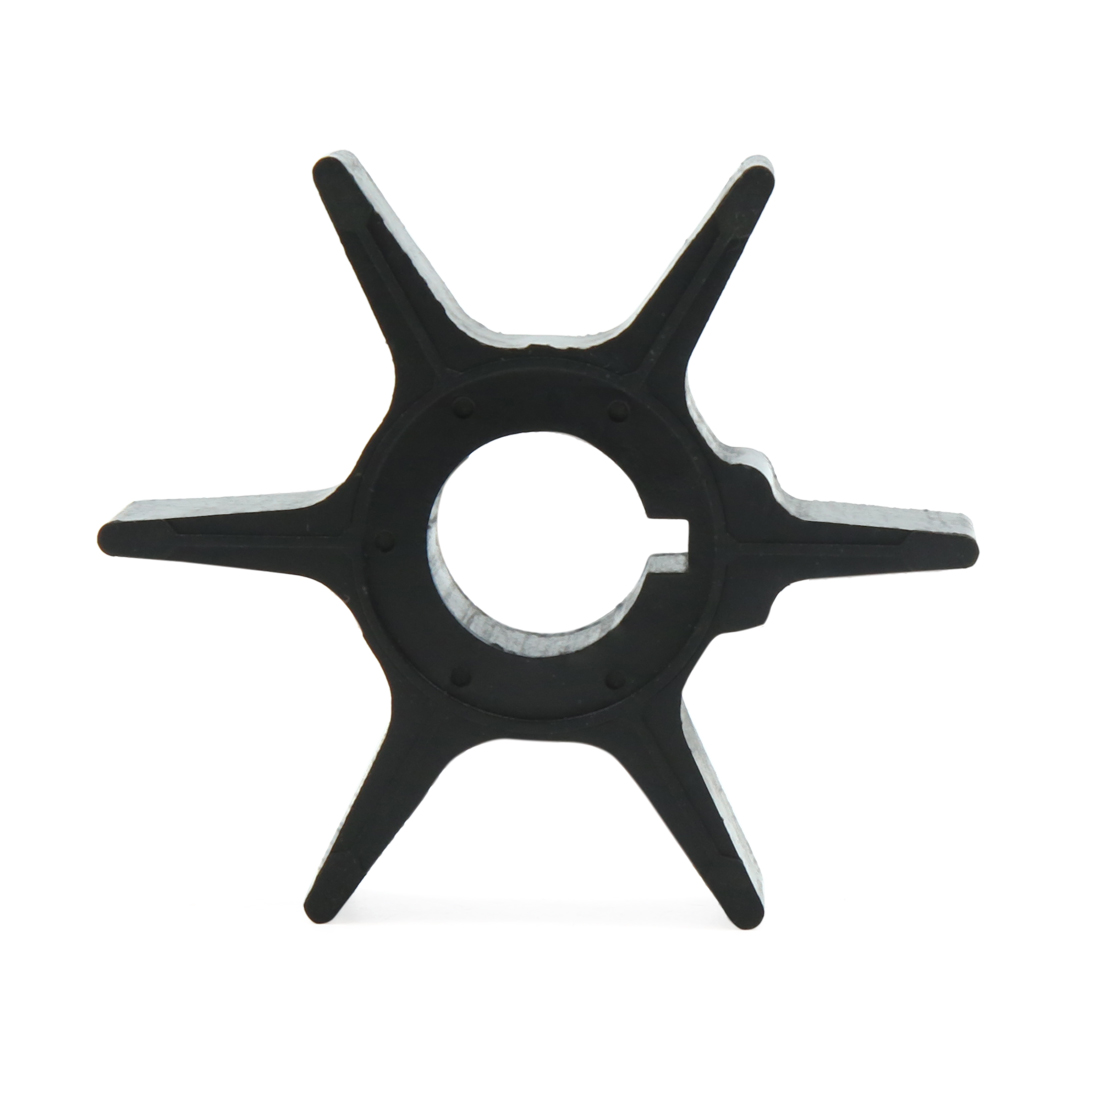 Boat Outboard Water Pump Impeller Replacement for Suzuki 50 65hp 17461-95201 - image 2 of 4